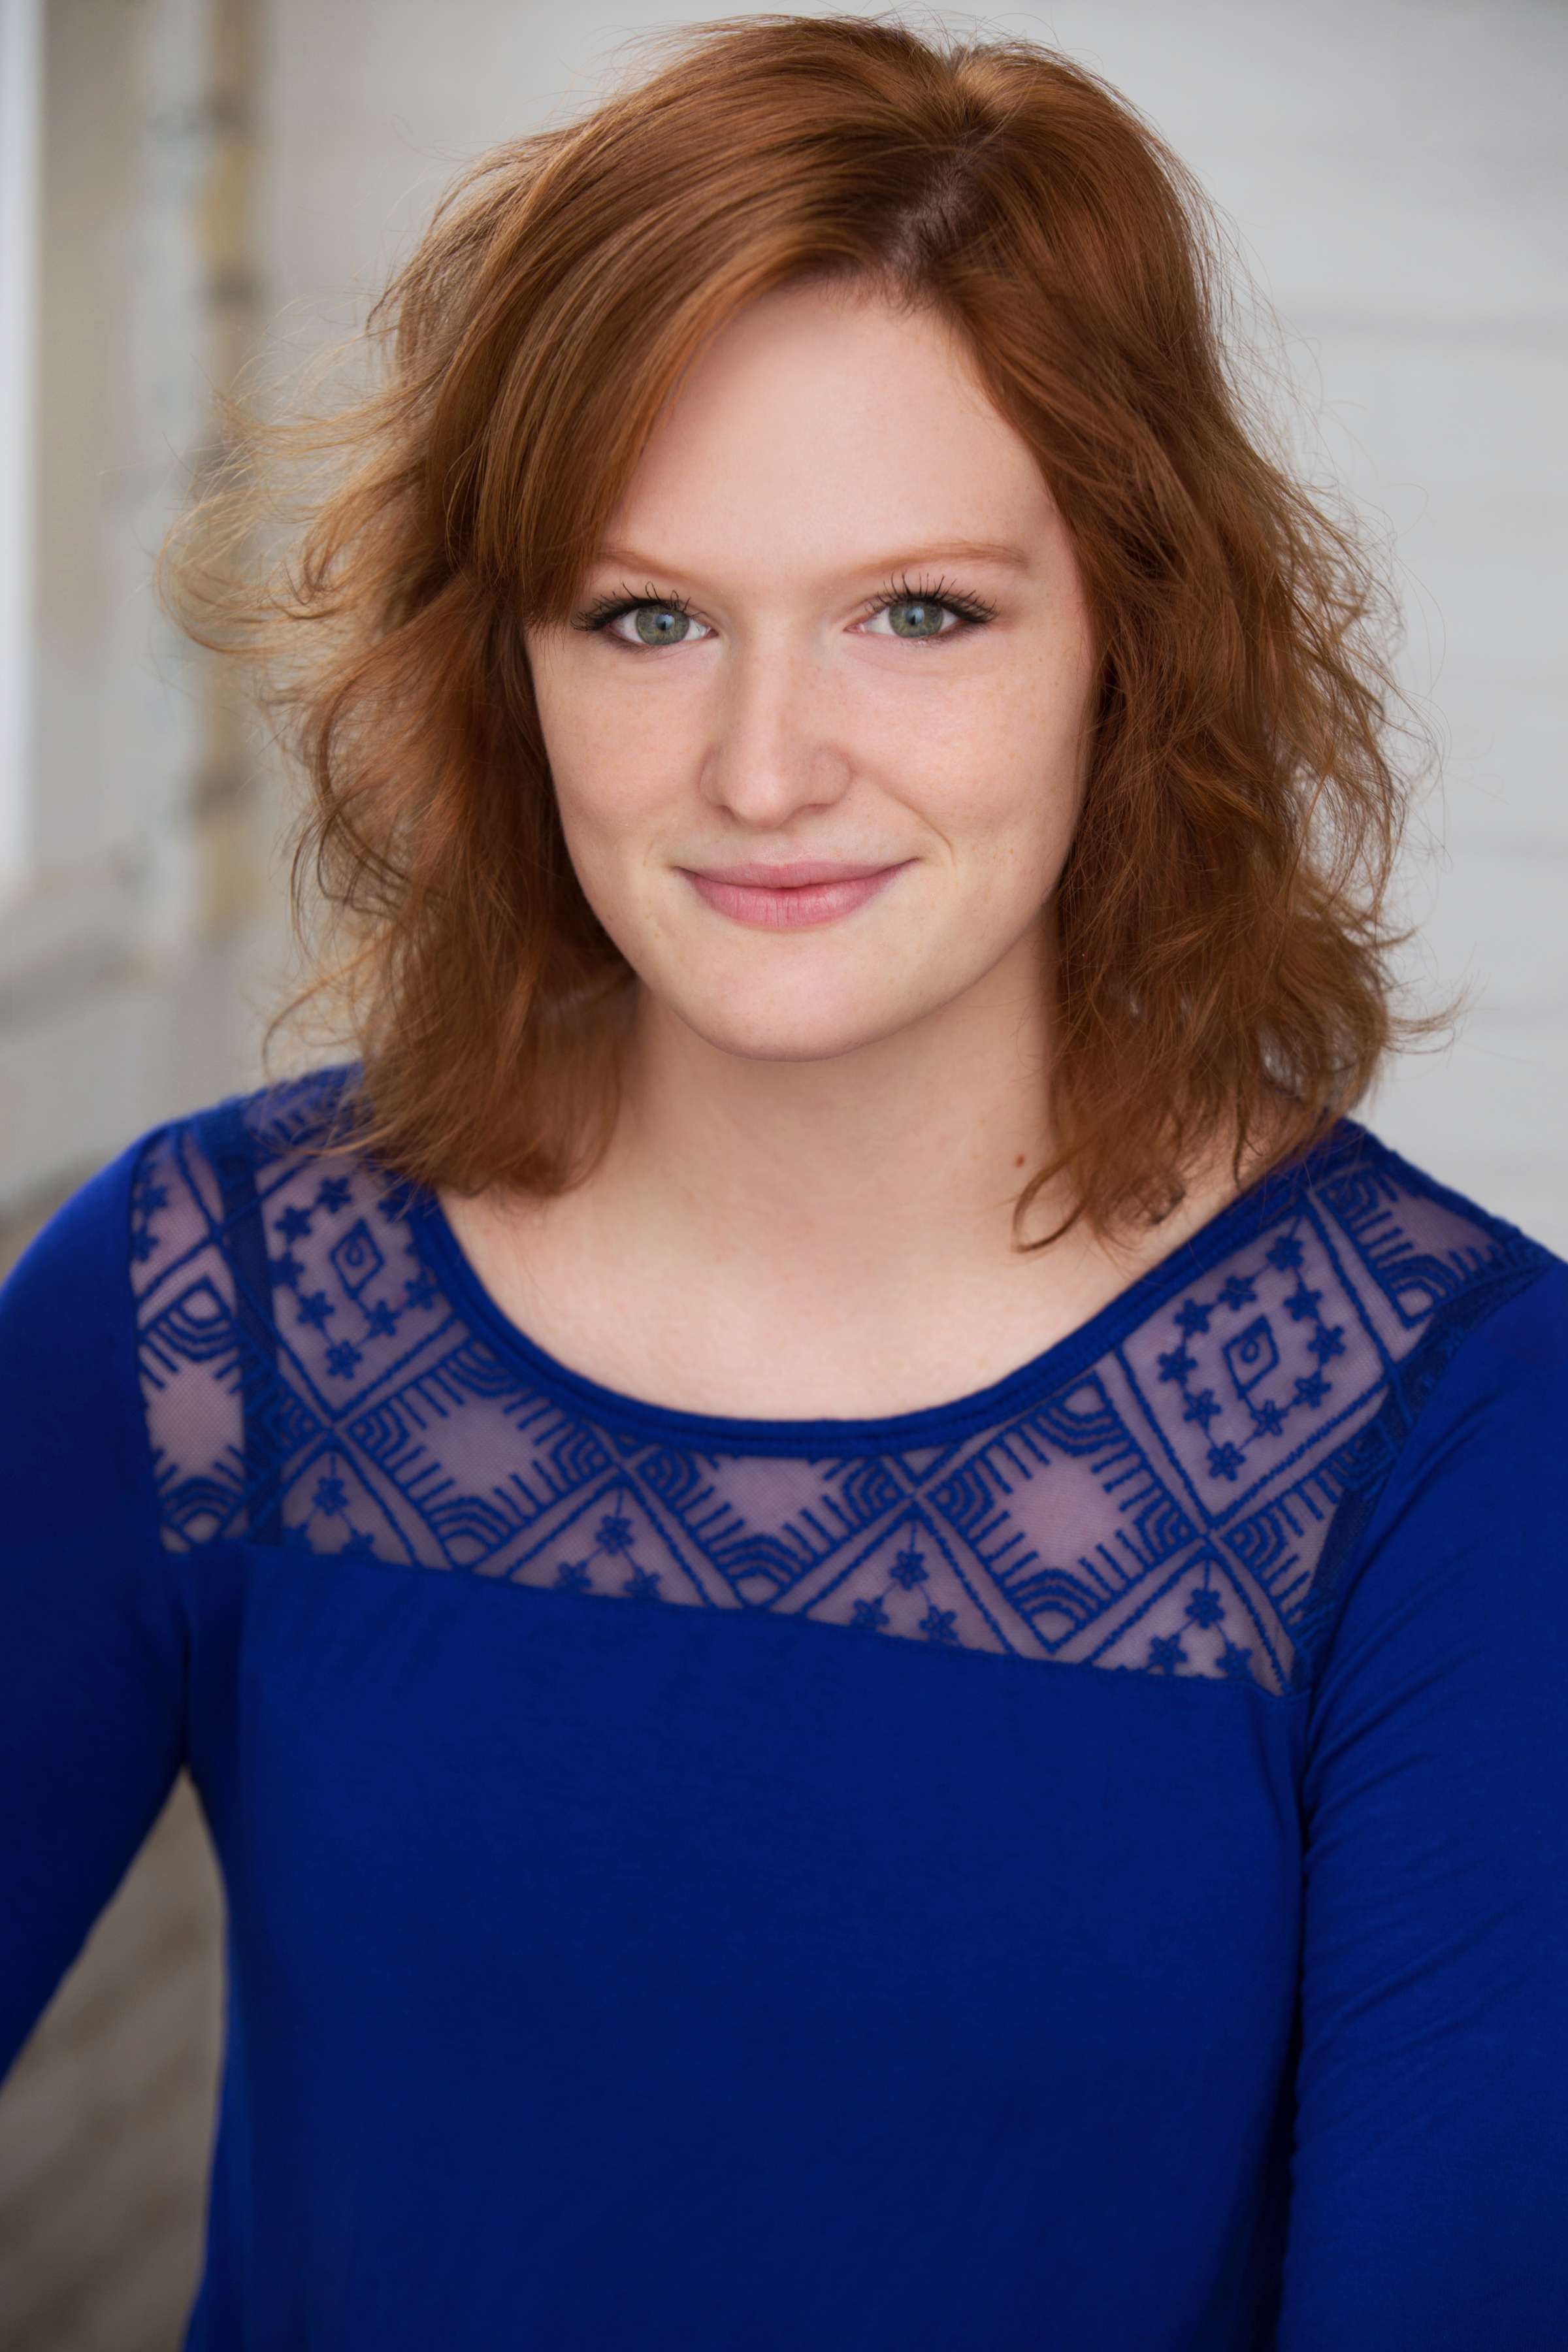 About the performer - Anna is a co-founder of the Orchard Theater Collective. She directed their last production,